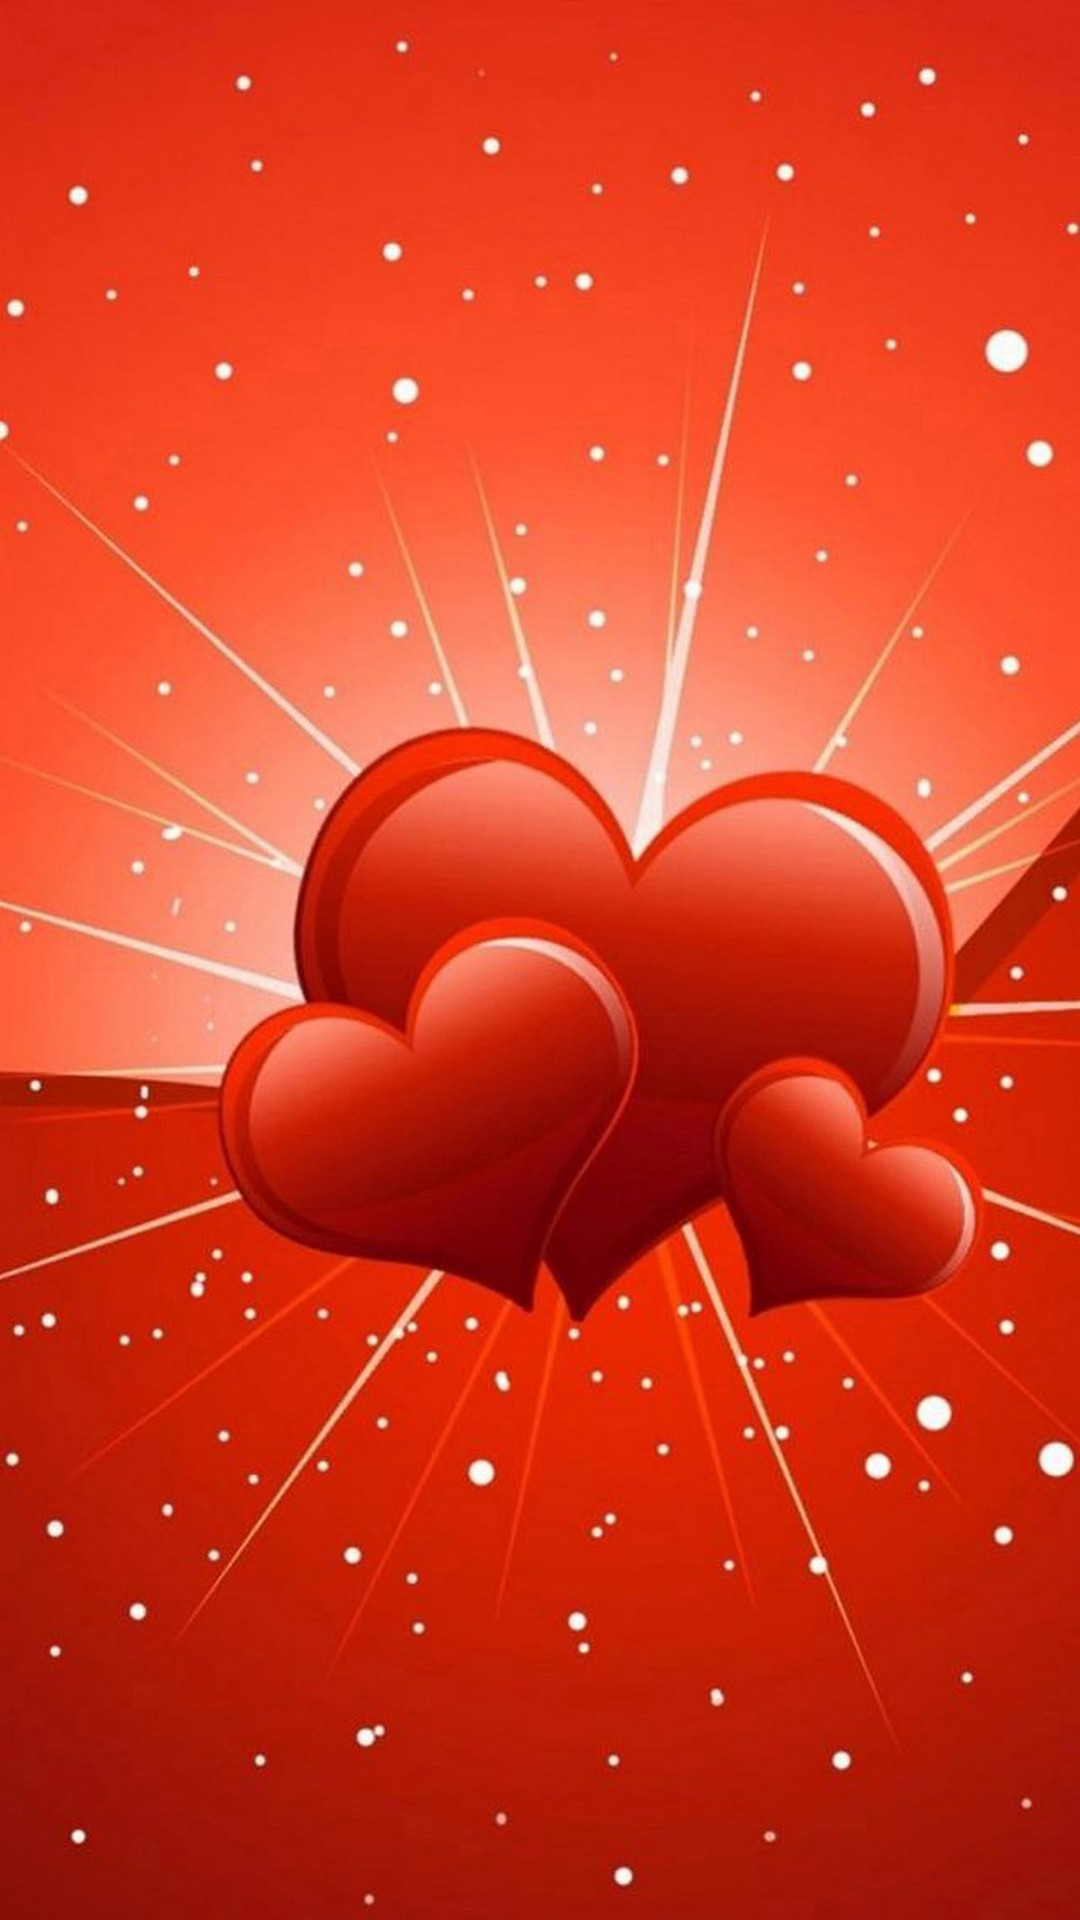 Valentines Day Wallpaper For Android   2020 Android Wallpapers 1080x1920